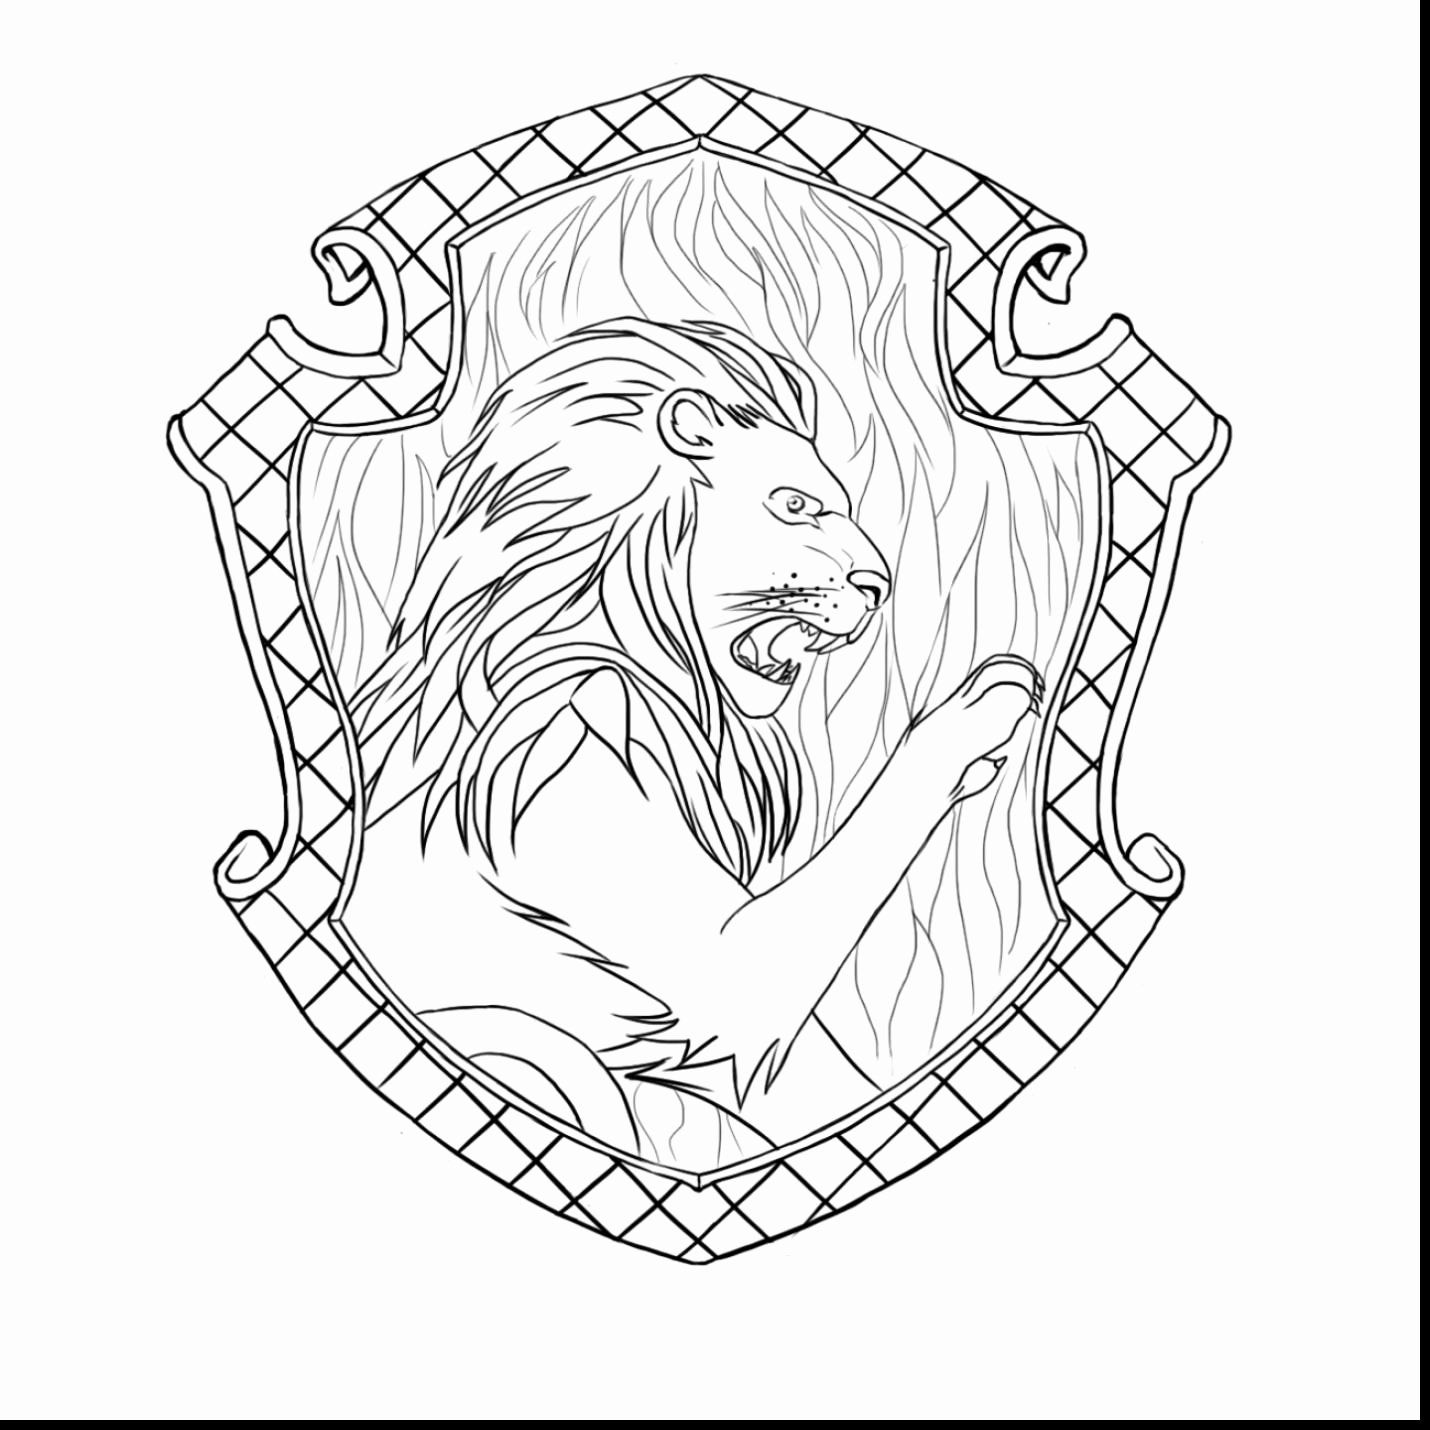 Ravenclaw Crest Coloring Page Fresh Gryffindor Coloring Page At Getcolorings In 2020 Harry Potter Coloring Pages Harry Potter Coloring Book Coloring Pages